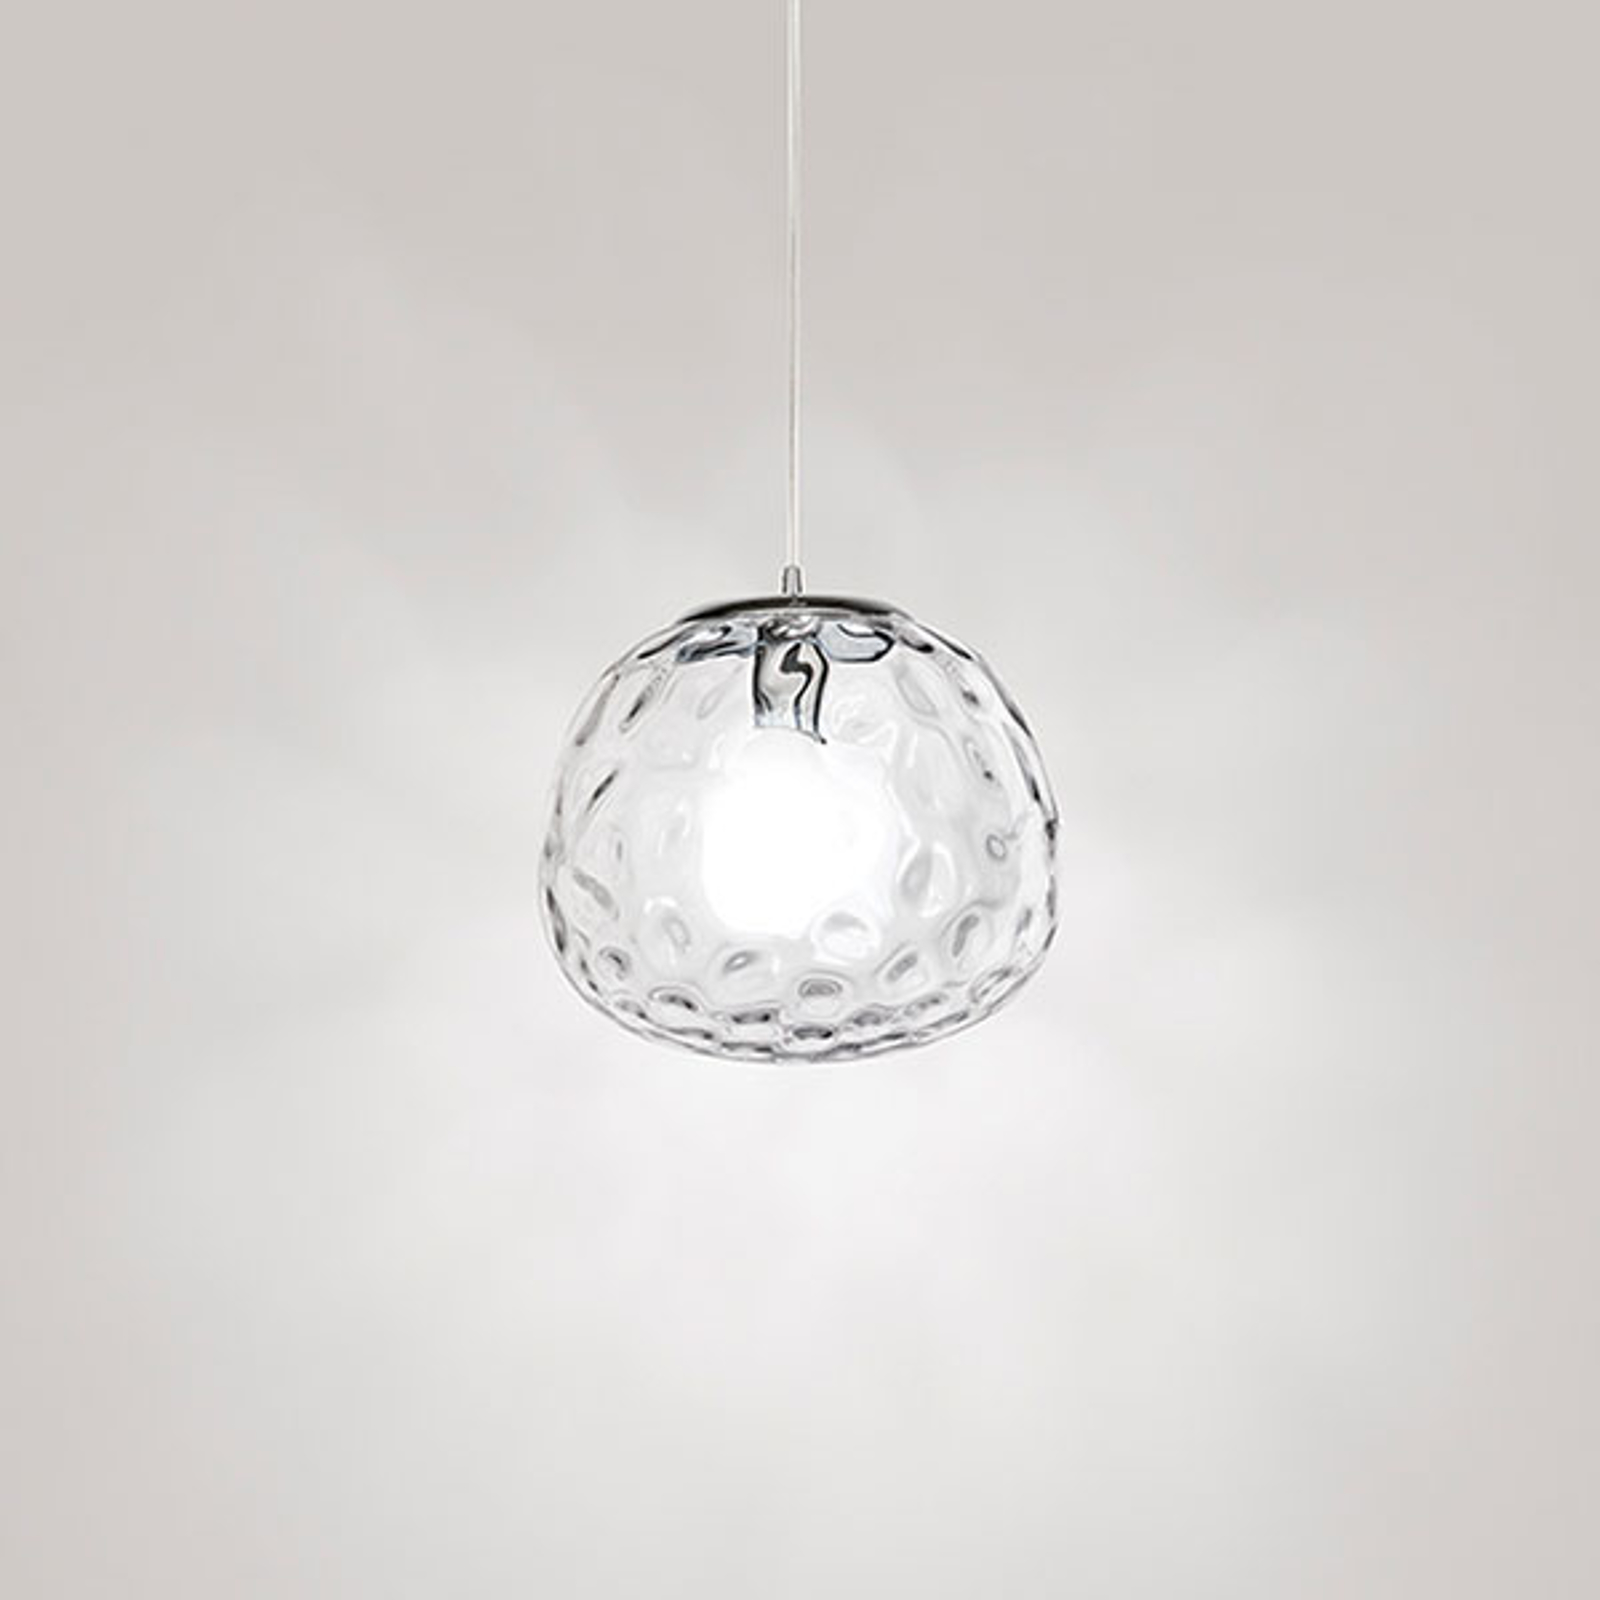 Suspension 6466 avec verre transparent Ø 30 cm